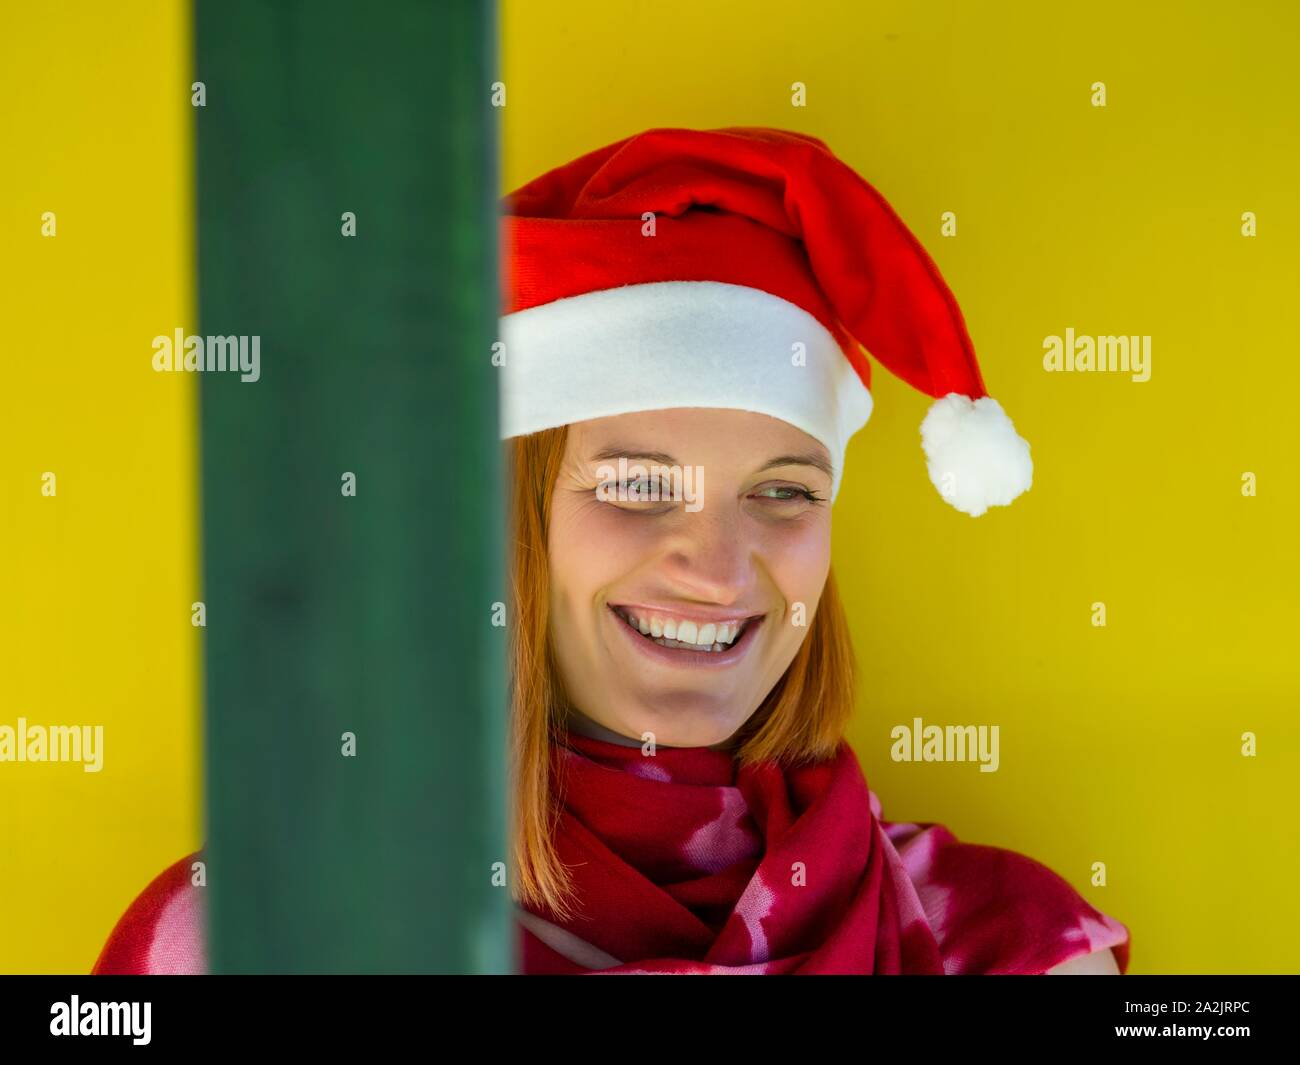 Happy and smiling female Red Santa portrait head and shoulders Yellow background looking away aside Stock Photo